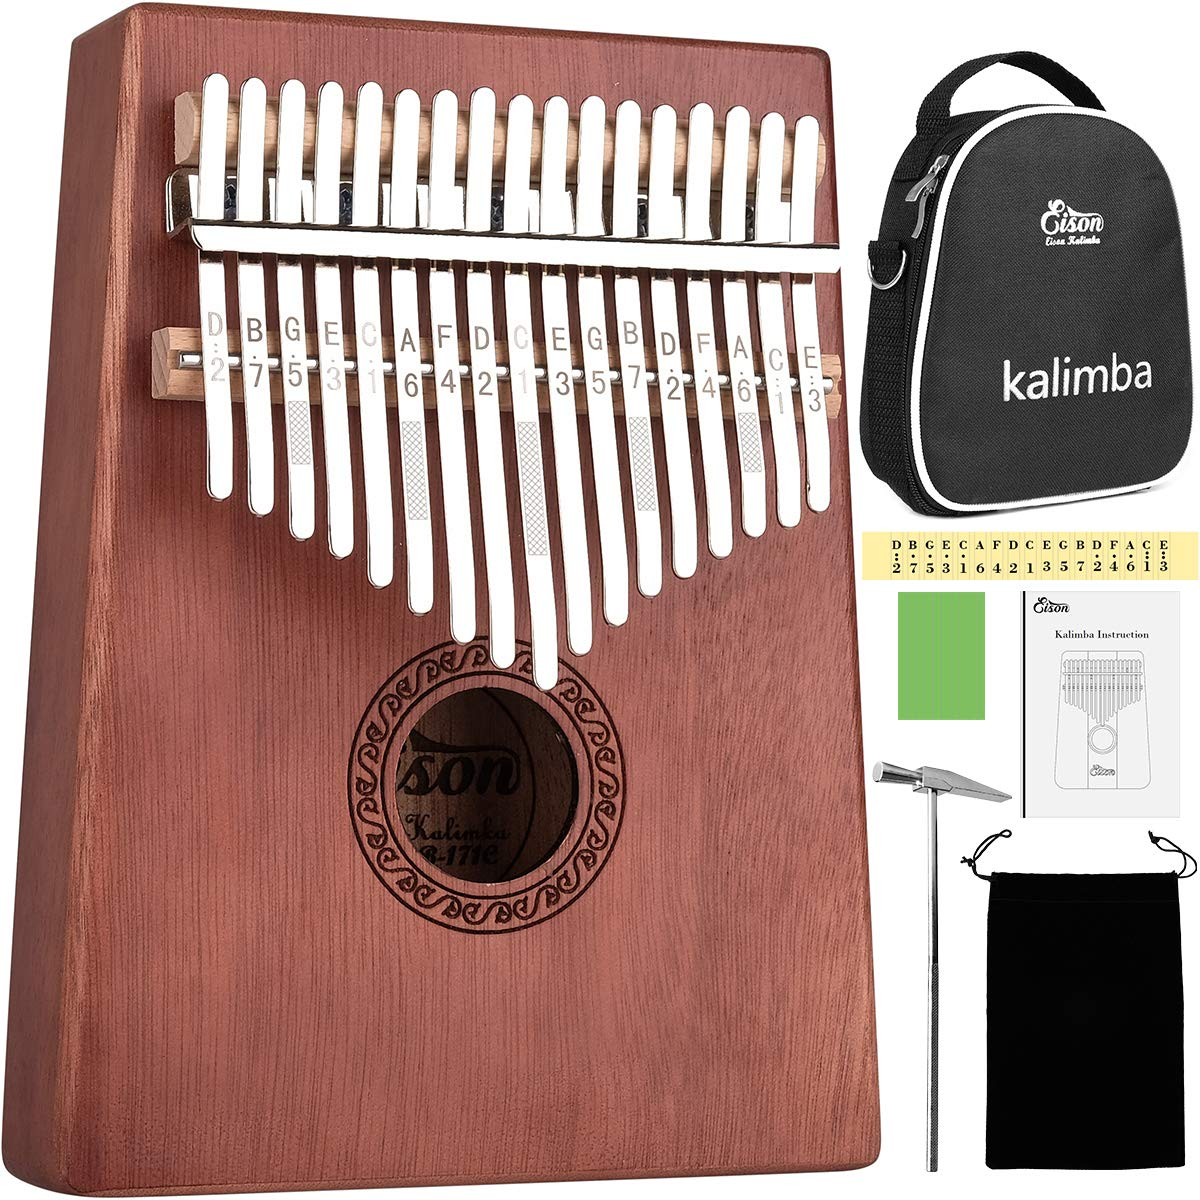 Kalimba,Eison Kalimba Thumb Piano 17 keys with Case Bag, African Finger Piano Kit, Cloth bag, Instruction, Tune Hammer, Key Stickers, Solid Wood Mahogany Body- Best Gift for Music Fans Adult Kids by Eison